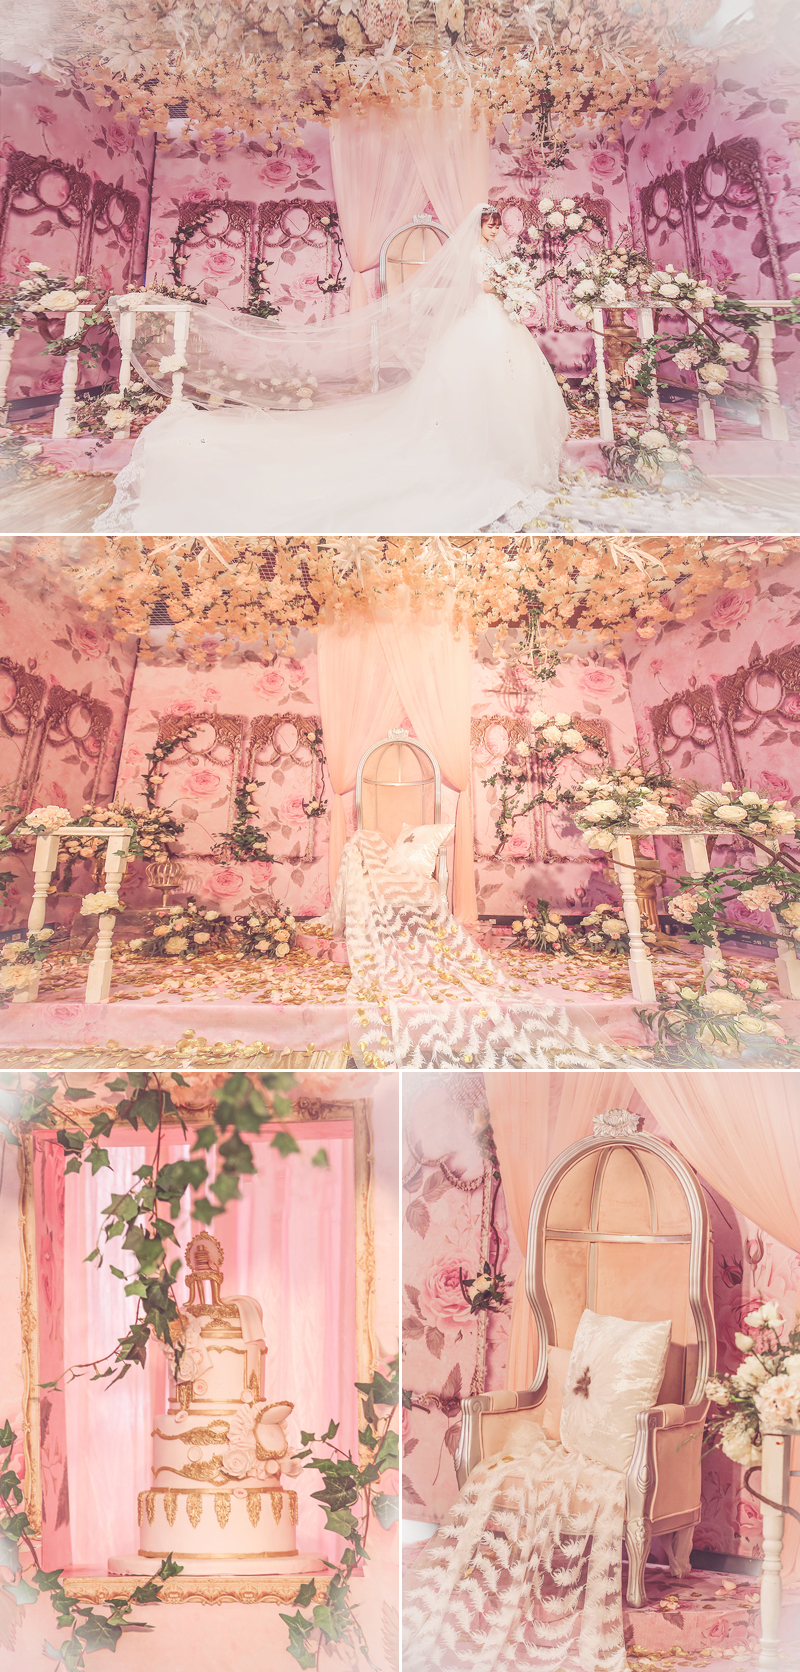 6 Breathtaking Fairy Tale-Inspired Indoor Wedding Décor Themes You ...